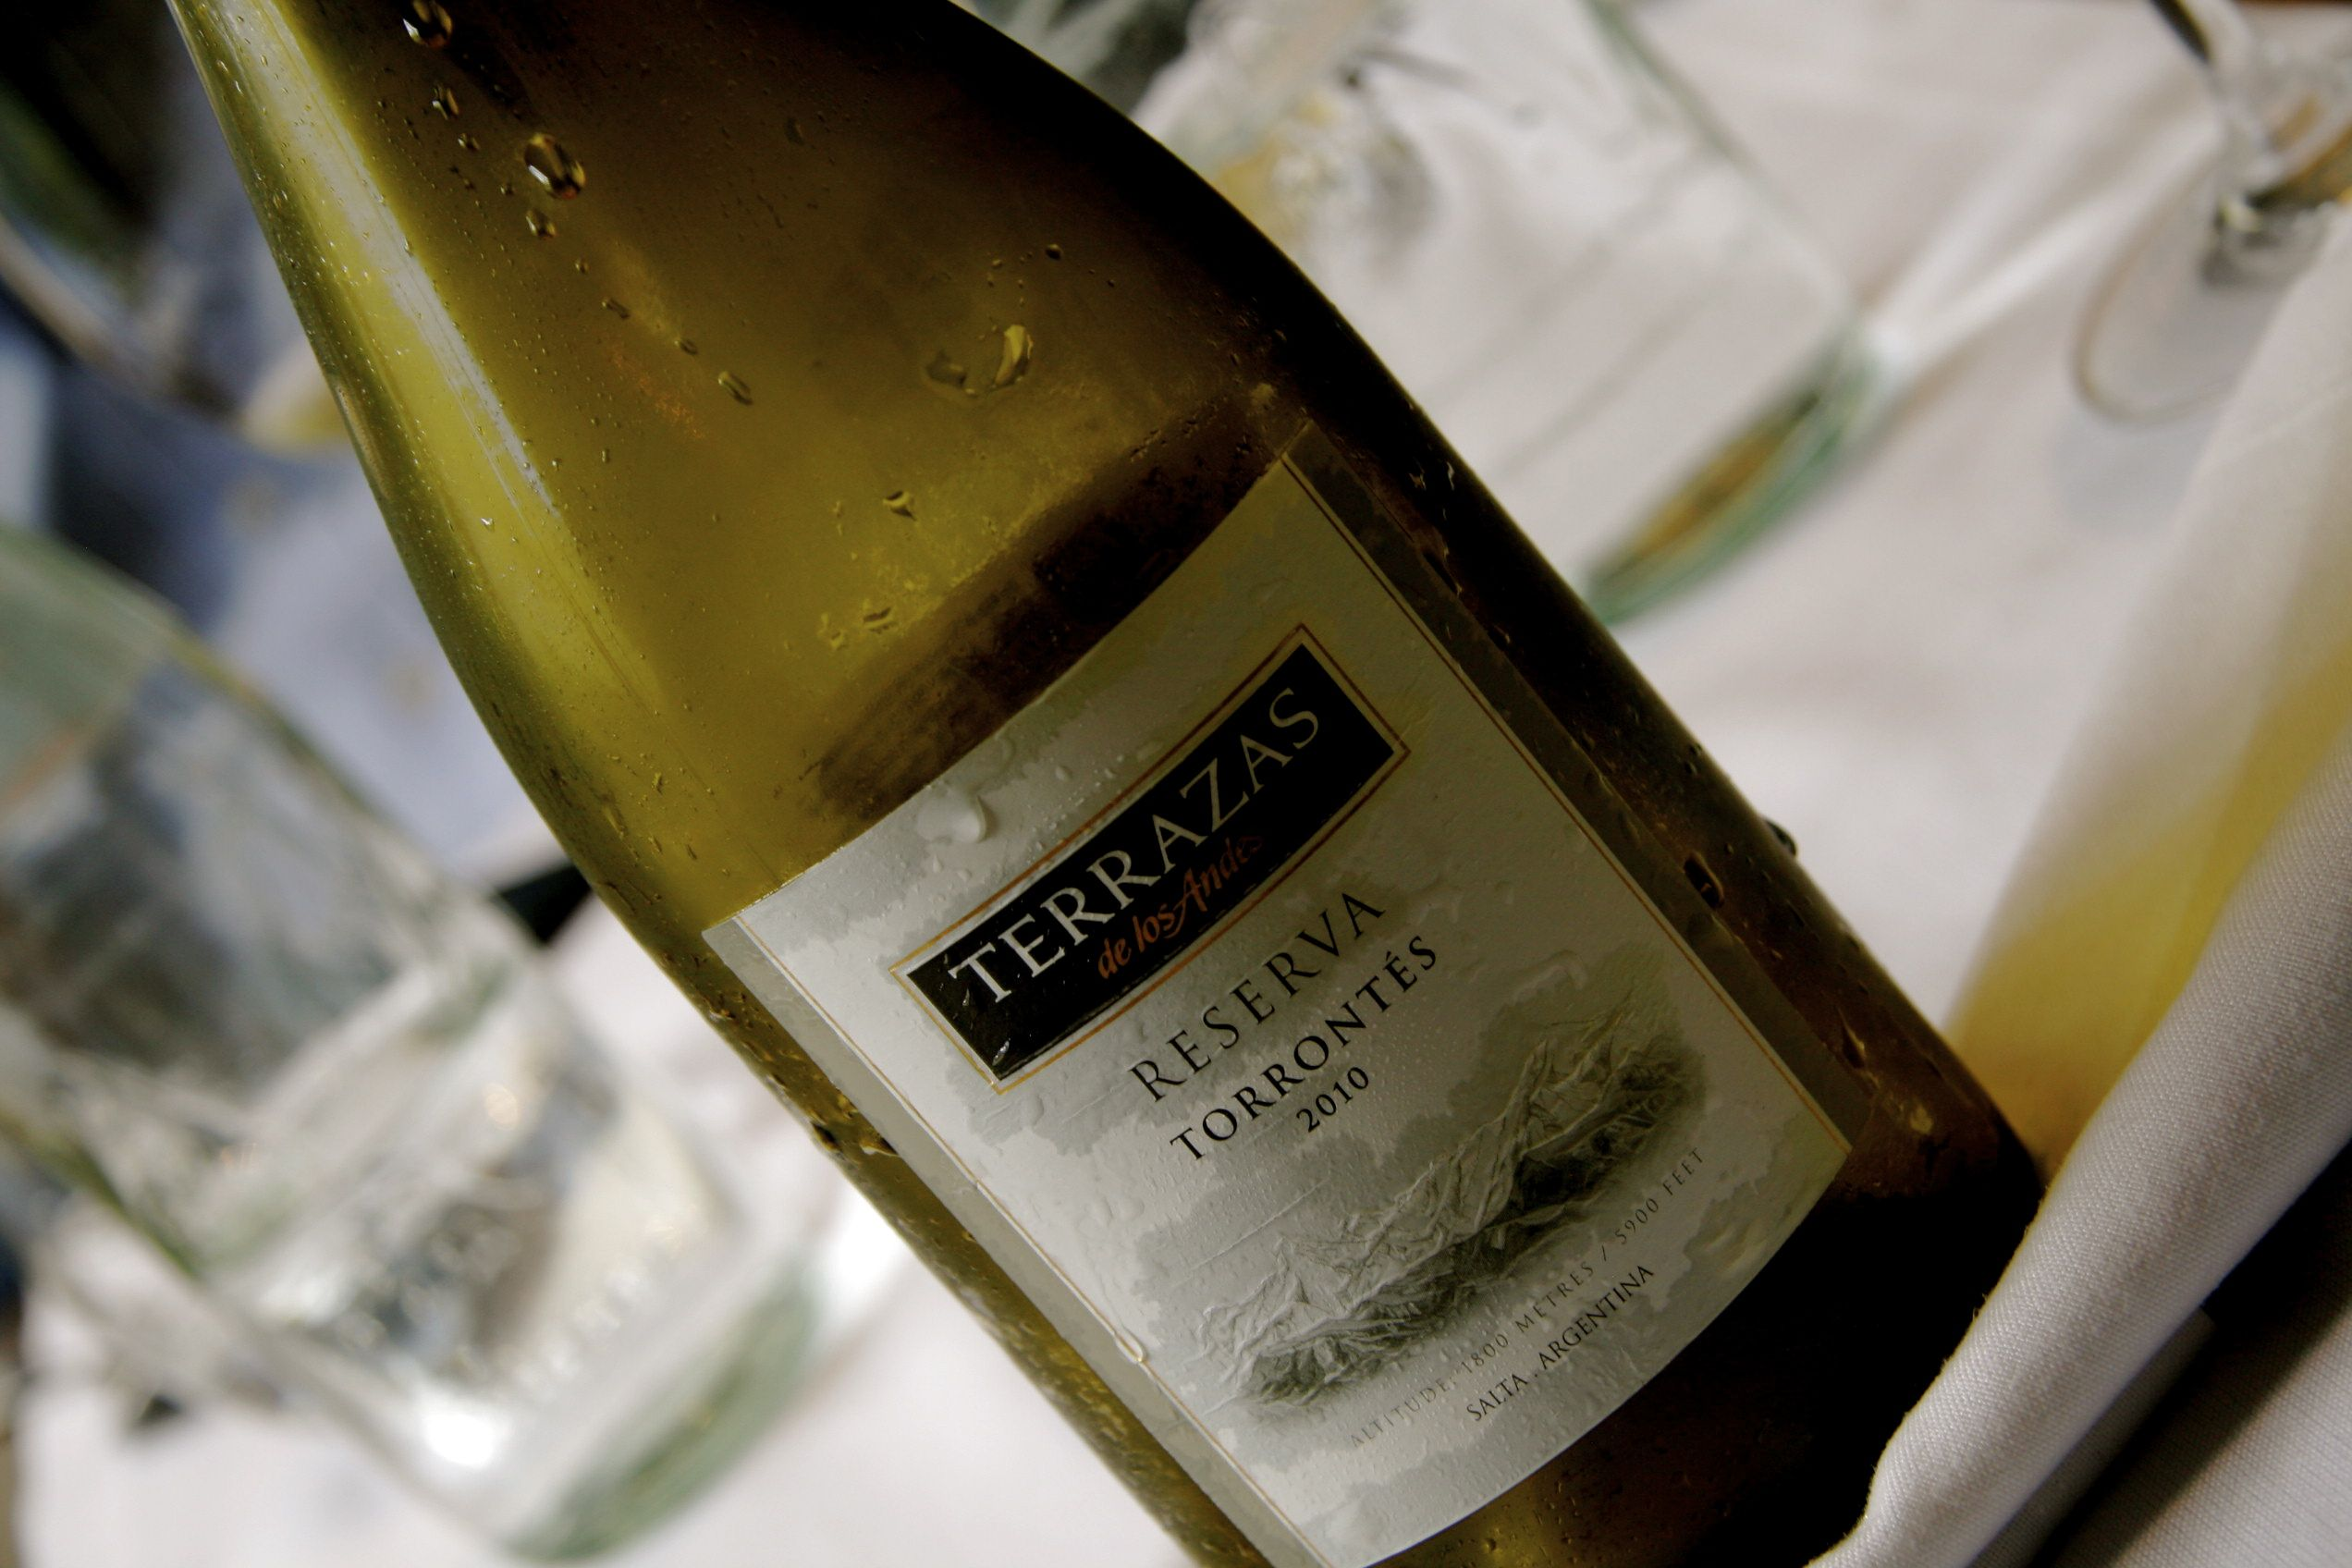 Terrazas De Los Andes Torrontes 2010 Favorite Wine Wine Bottle Wines